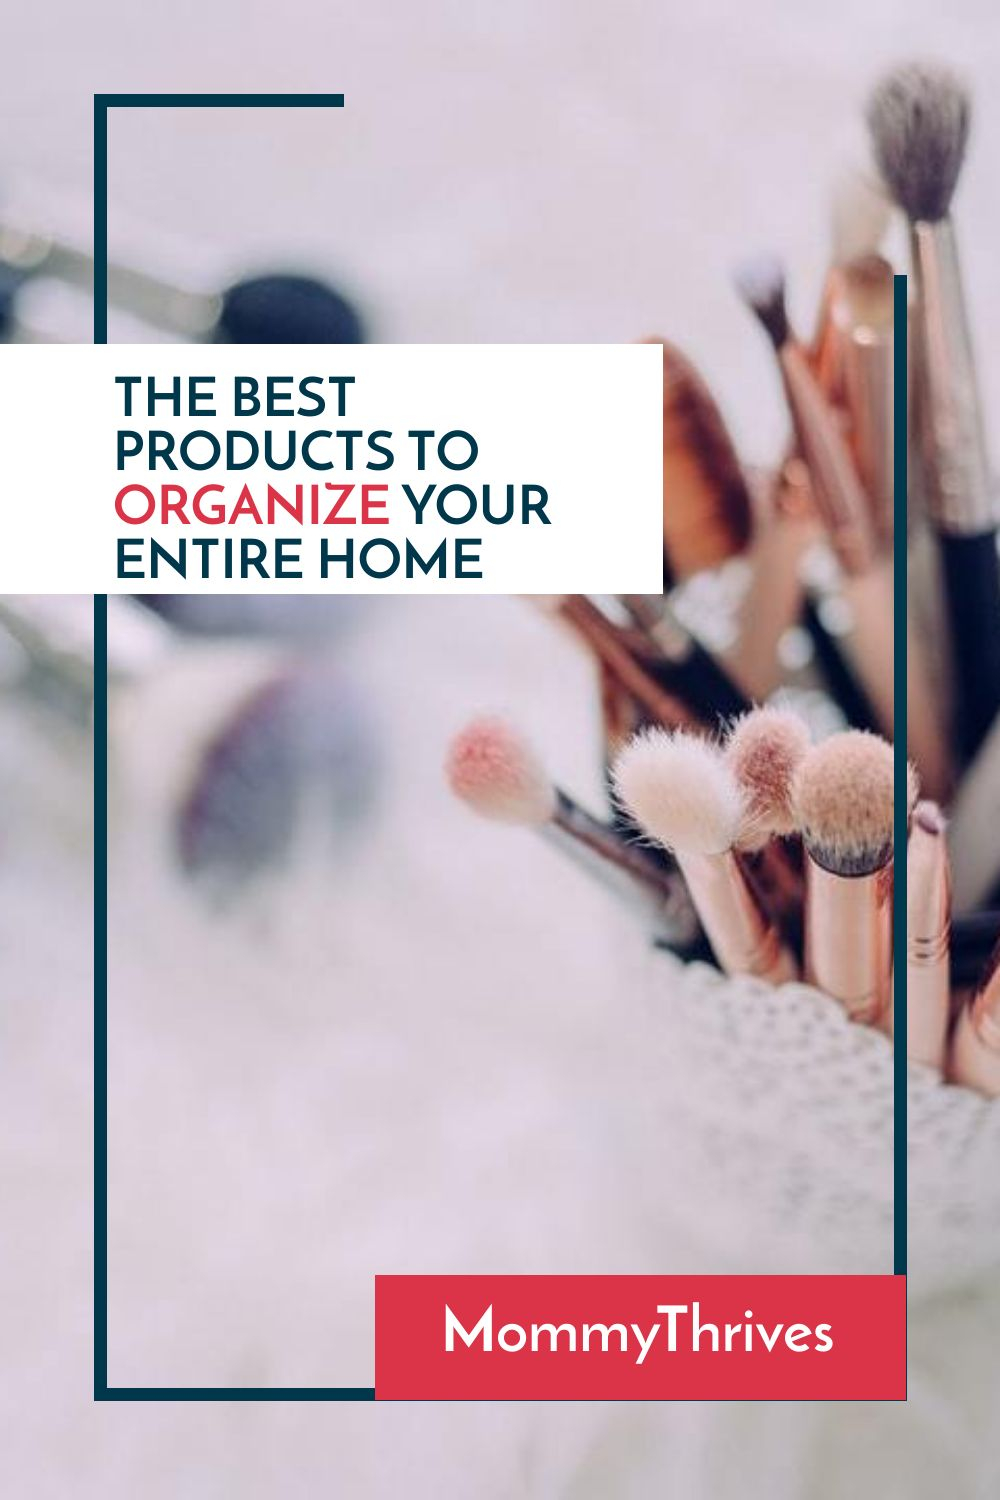 Best Products For Home Organization - How To Organize Your Home - Clutter Free Organization Products For Home